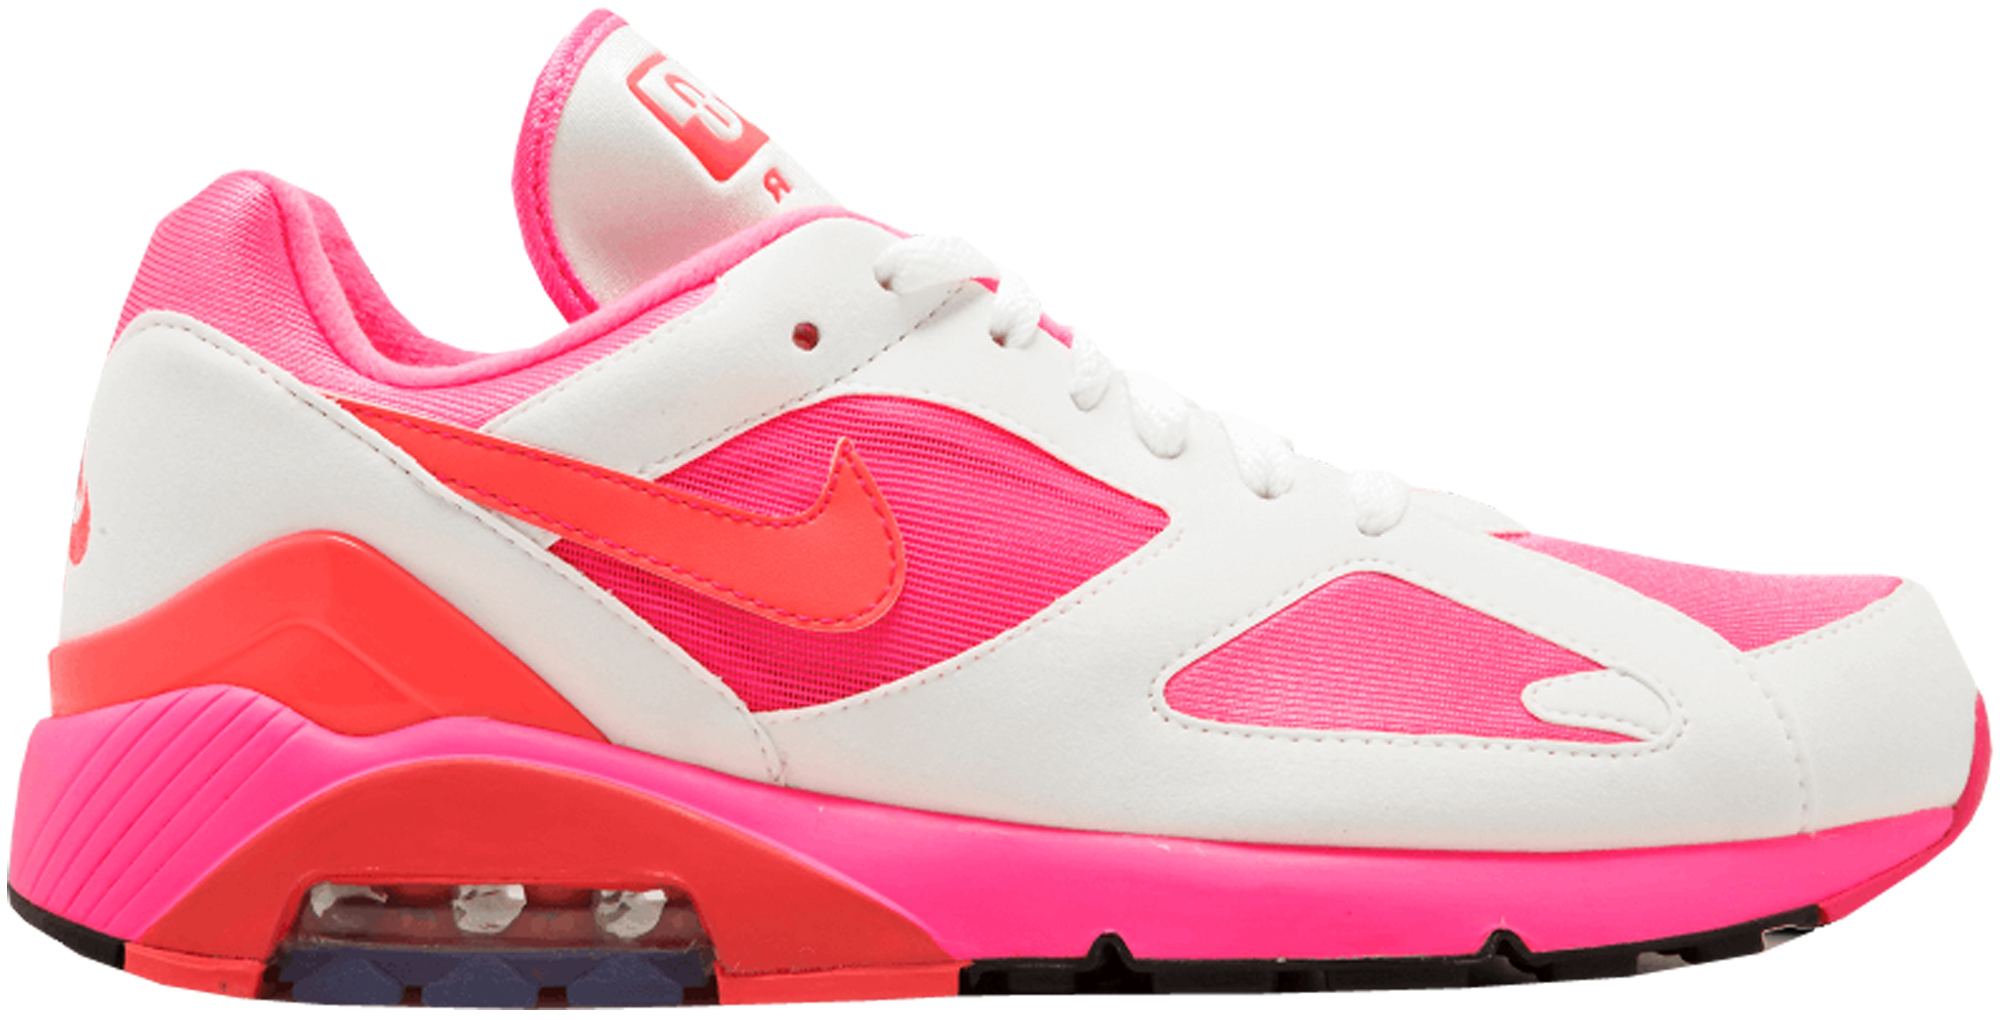 Comme des Garcons x Nike Air Max 180 Pink StockX News